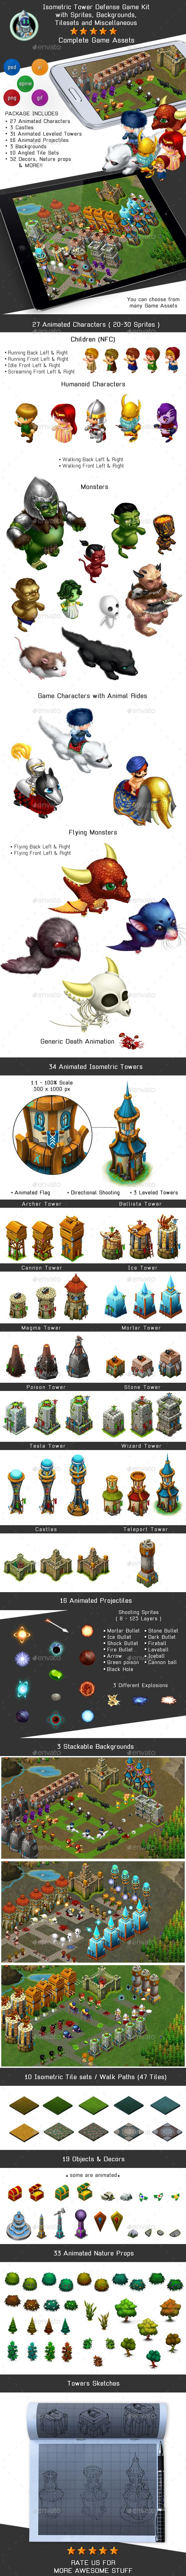 #Isometric #Tower Defense #Game Kit Pack - #Sprites, #Backgrounds - Game Kits Game #Assets Download here: https://graphicriver.net/item/isometric-tower-defense-game-kit-pack-sprites-backgrounds/16958247?ref=alena994